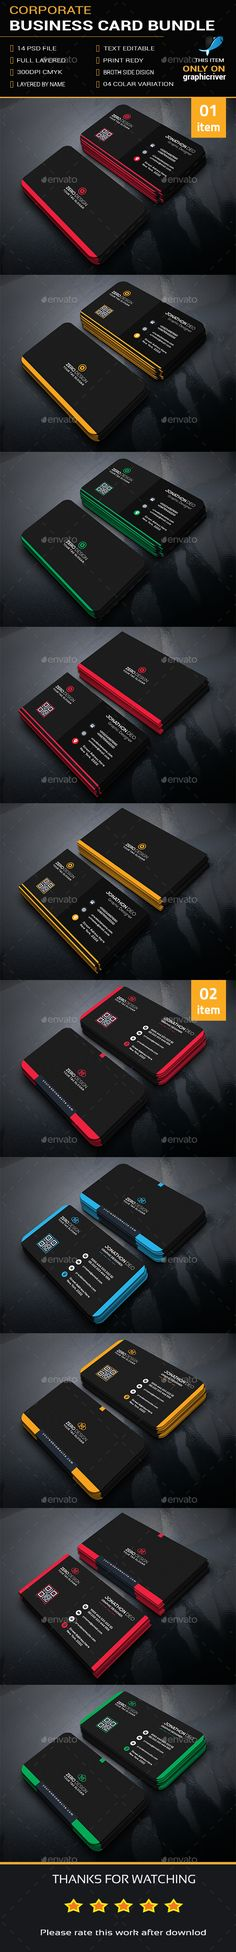 Corporate Business Card Bundle - Business Cards Print Templates Download here : http://graphicriver.net/item/corporate-business-card-bundle/15787476?s_rank=286&ref=Al-fatih